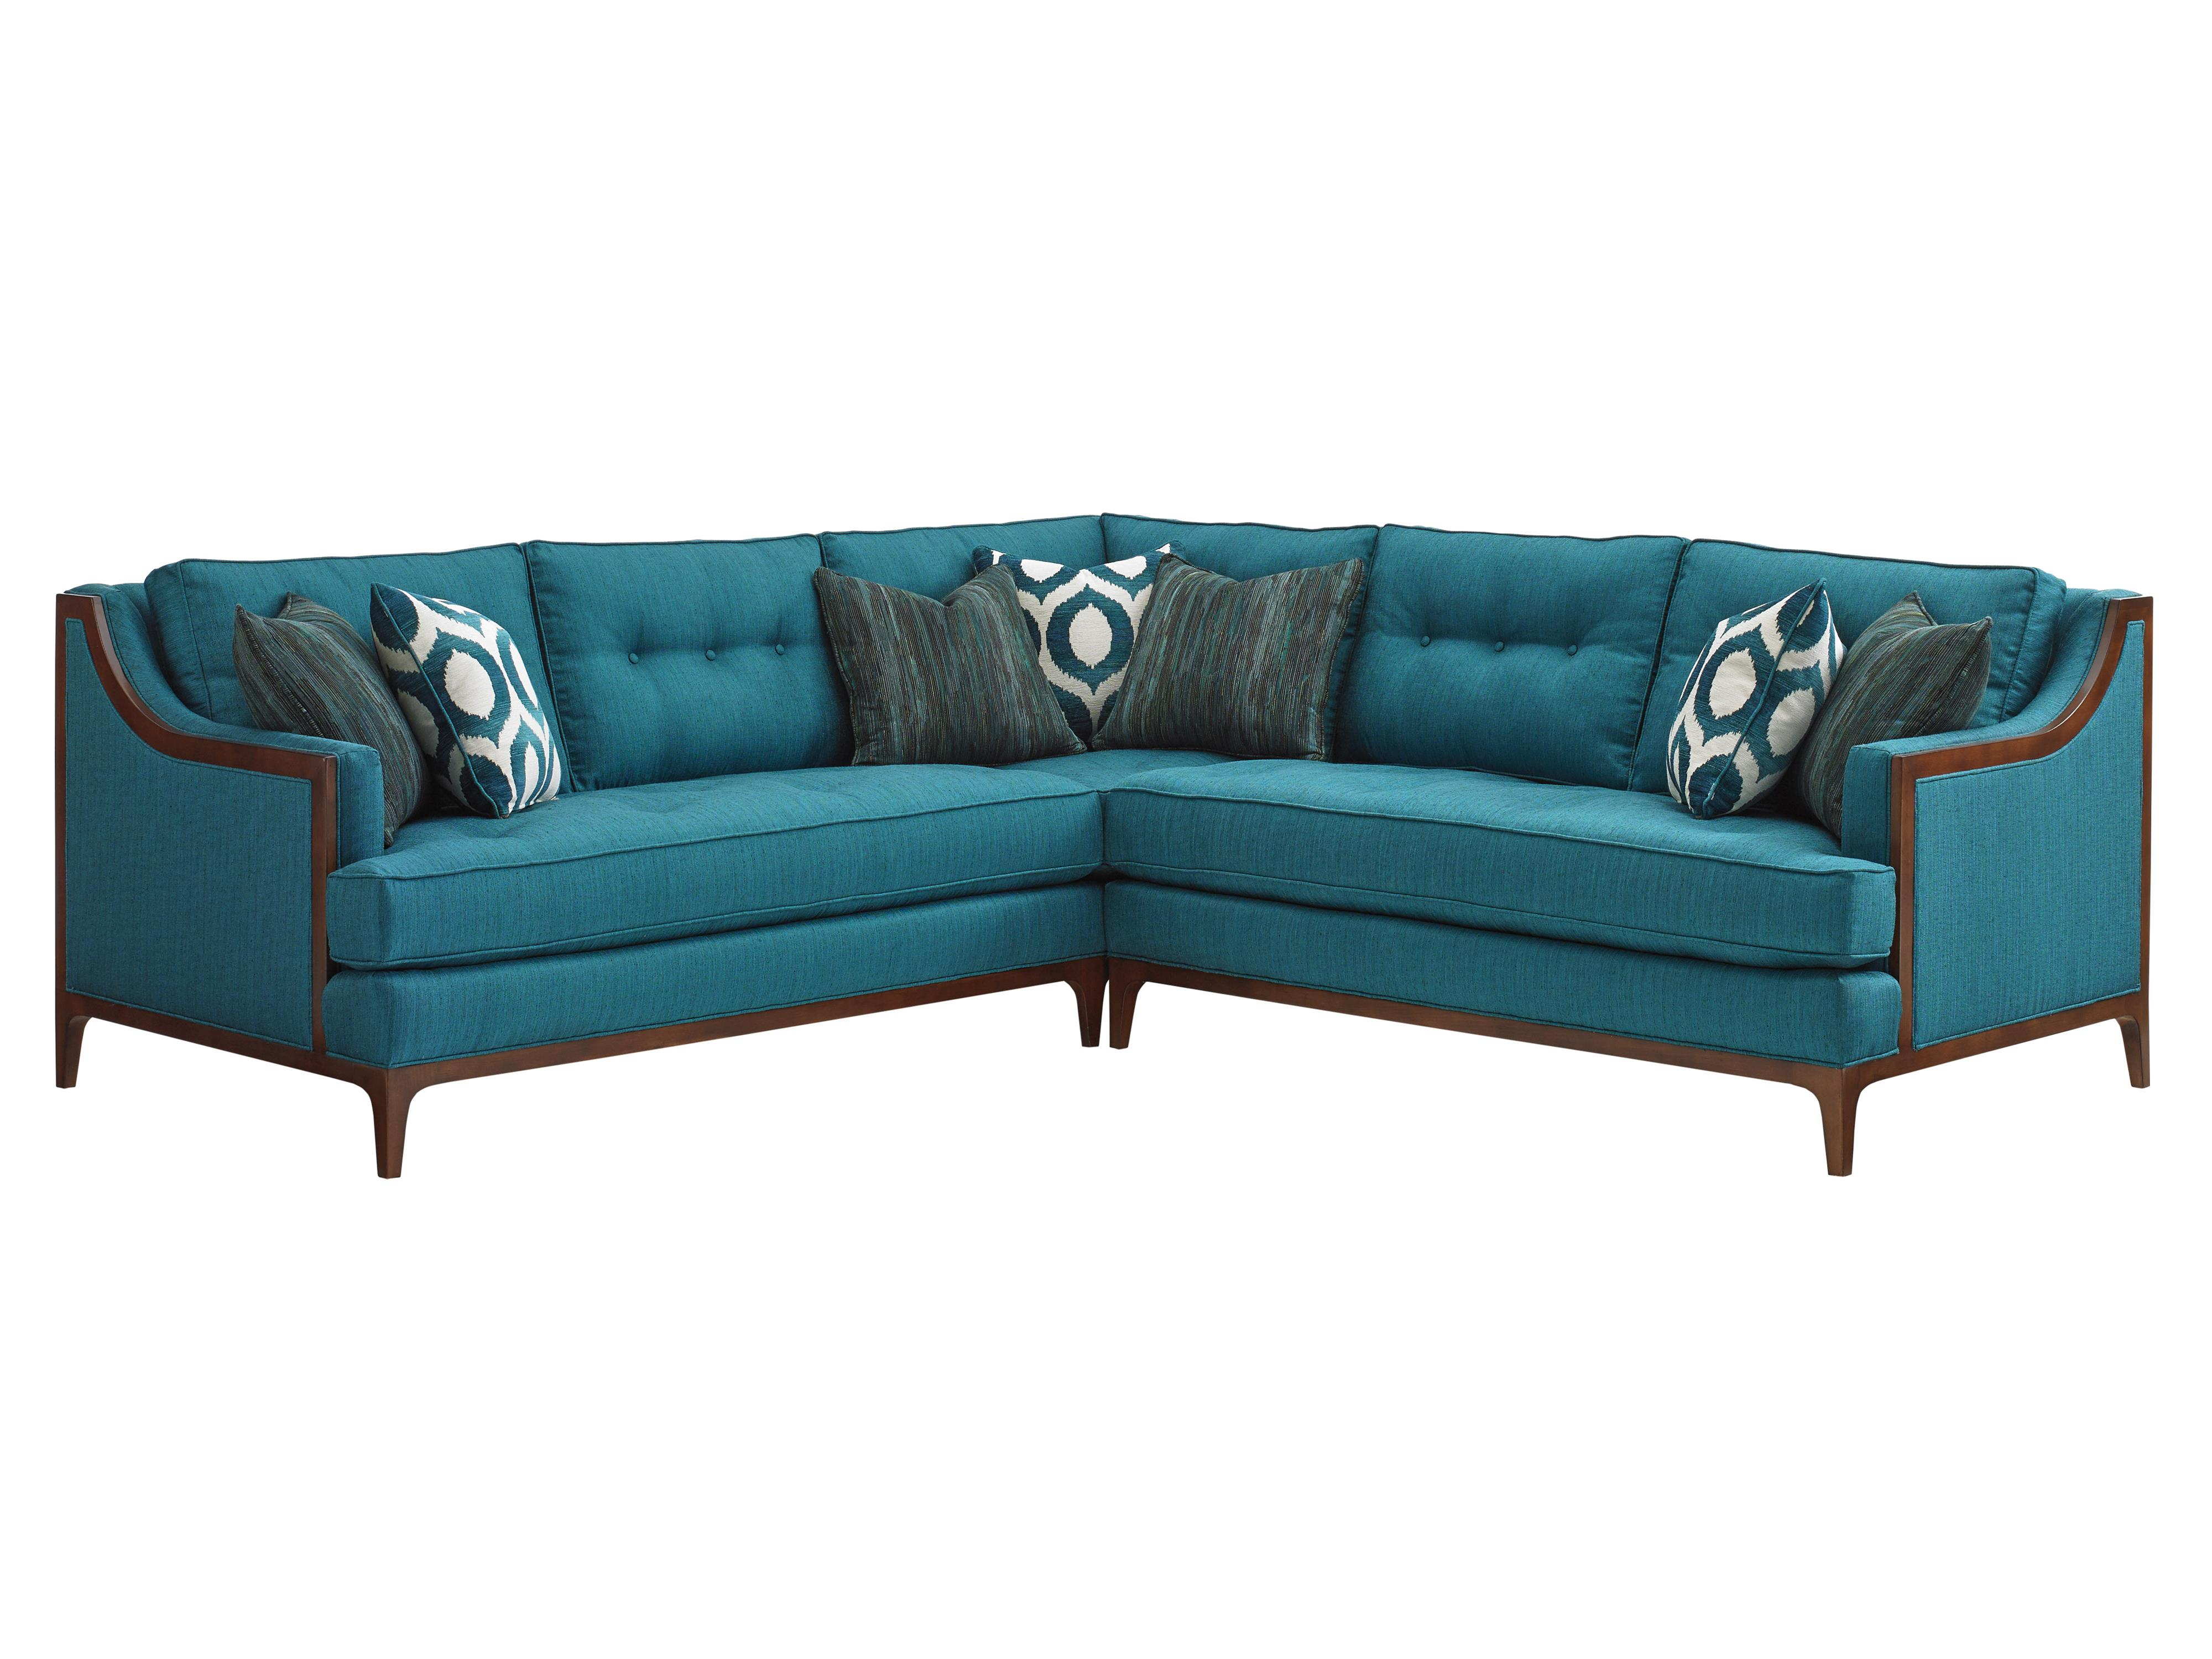 TAKE FIVE Barclay Sectional Sofa by Lexington at Jacksonville Furniture Mart